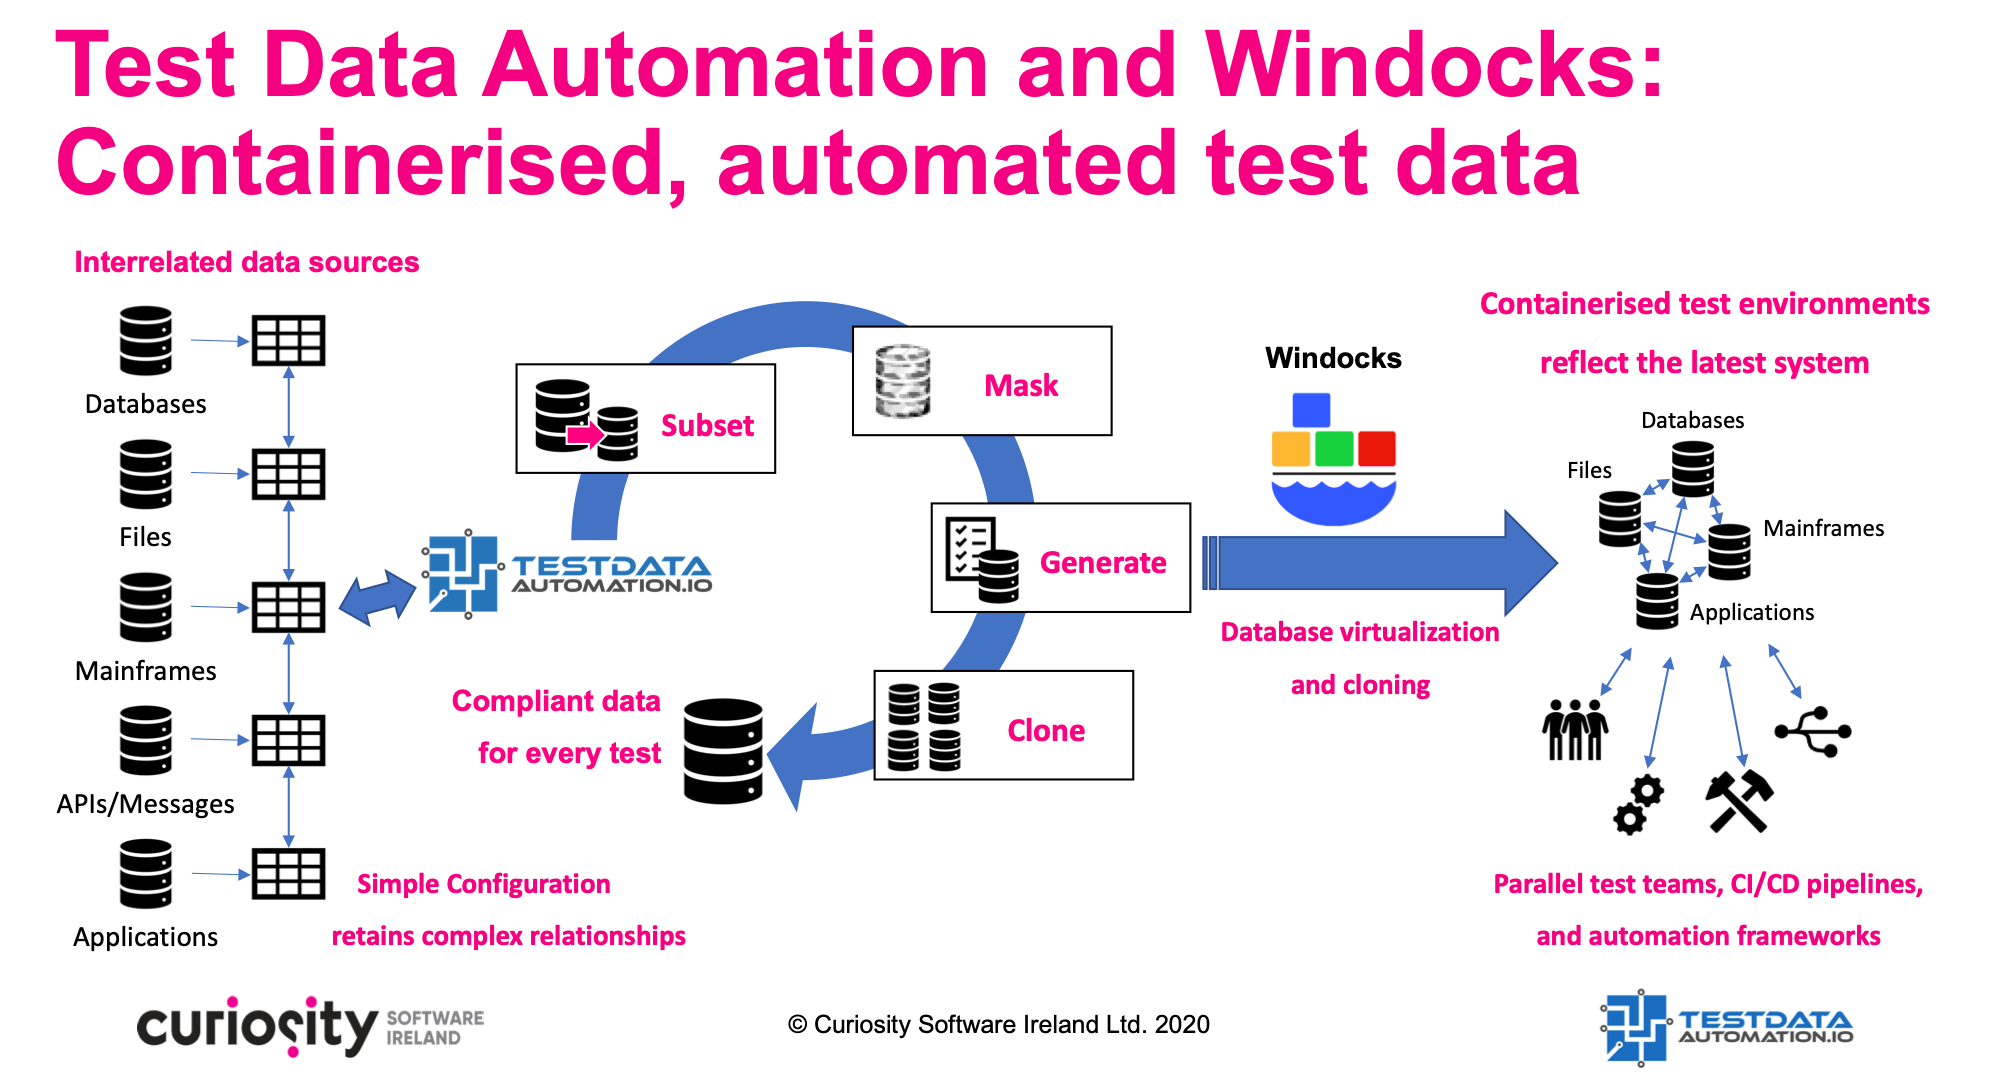 Test Data Automationa and Windocks_DevOps Ready Containerised Test Data